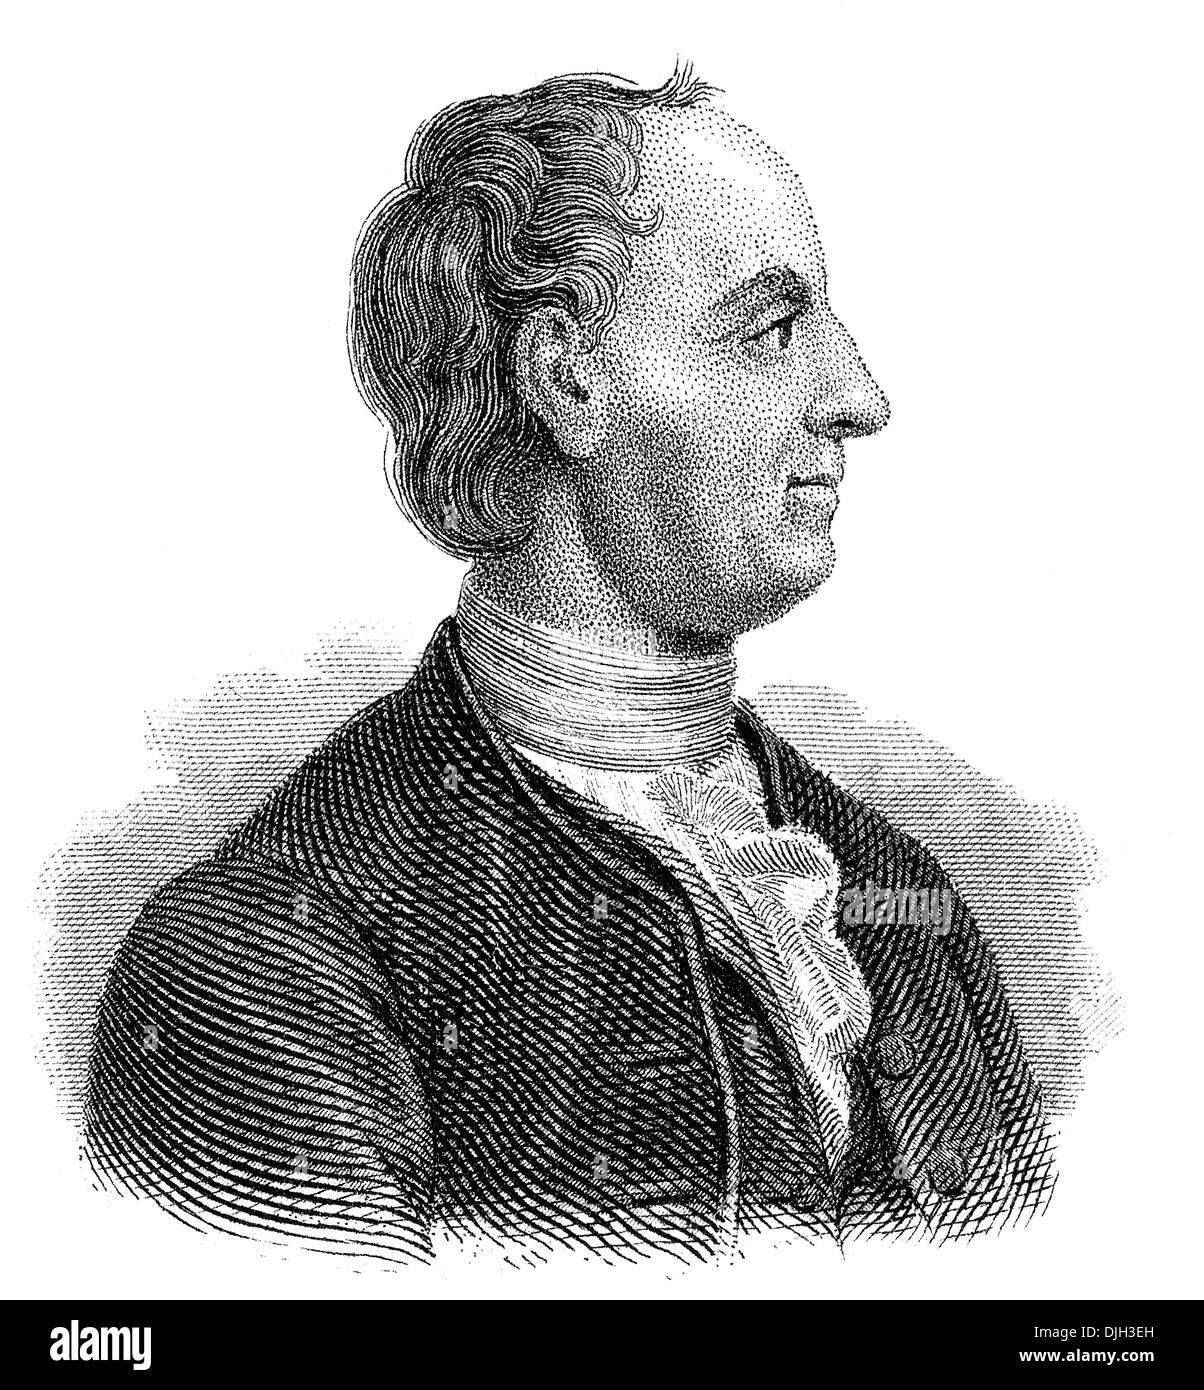 leonhard euler contribution Leonhard euler (pronounced oiler) was born on april 15, 1707 in the city of basel, switzerland his mother was marguerite brucker and his father was paul euler leonhard was the eldest of their four children.